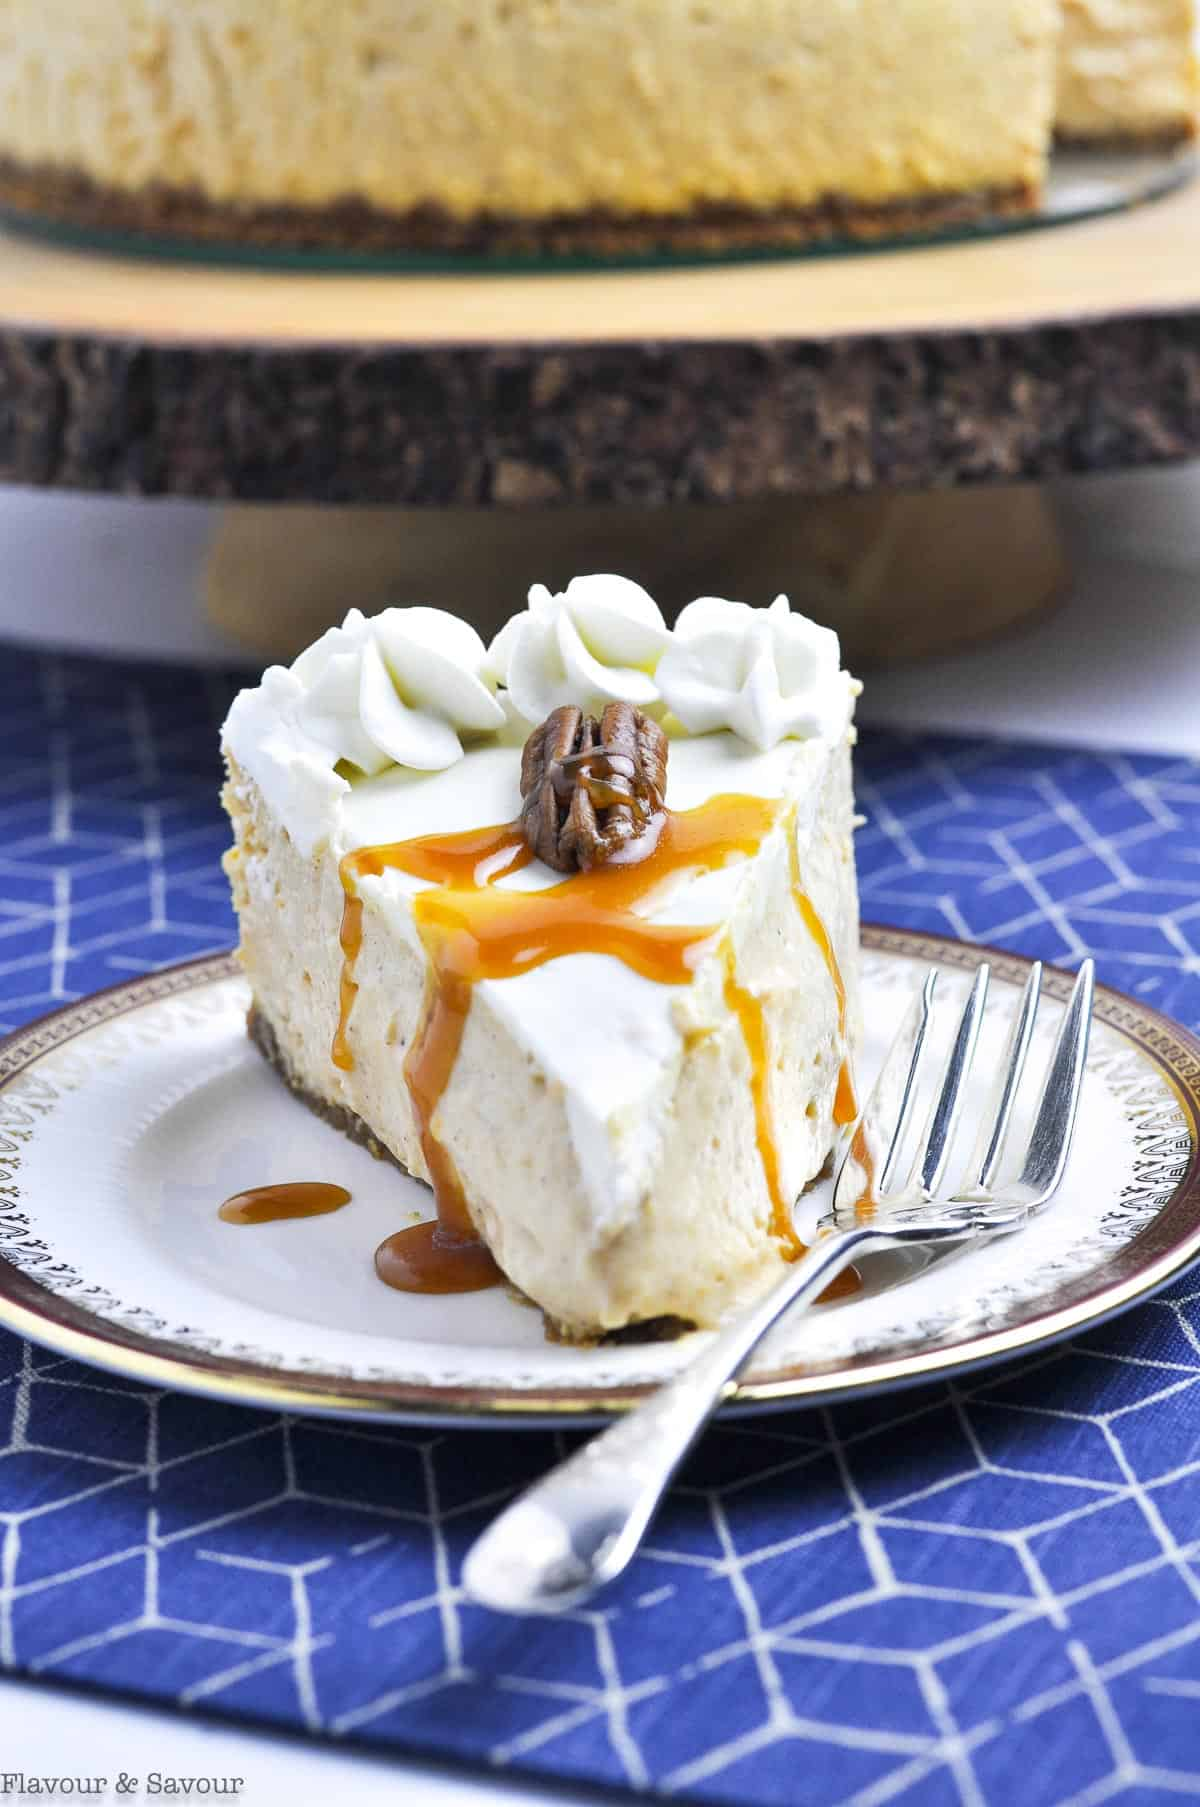 A slice of Pumpkin Cheesecake with caramel sauce and a pecan